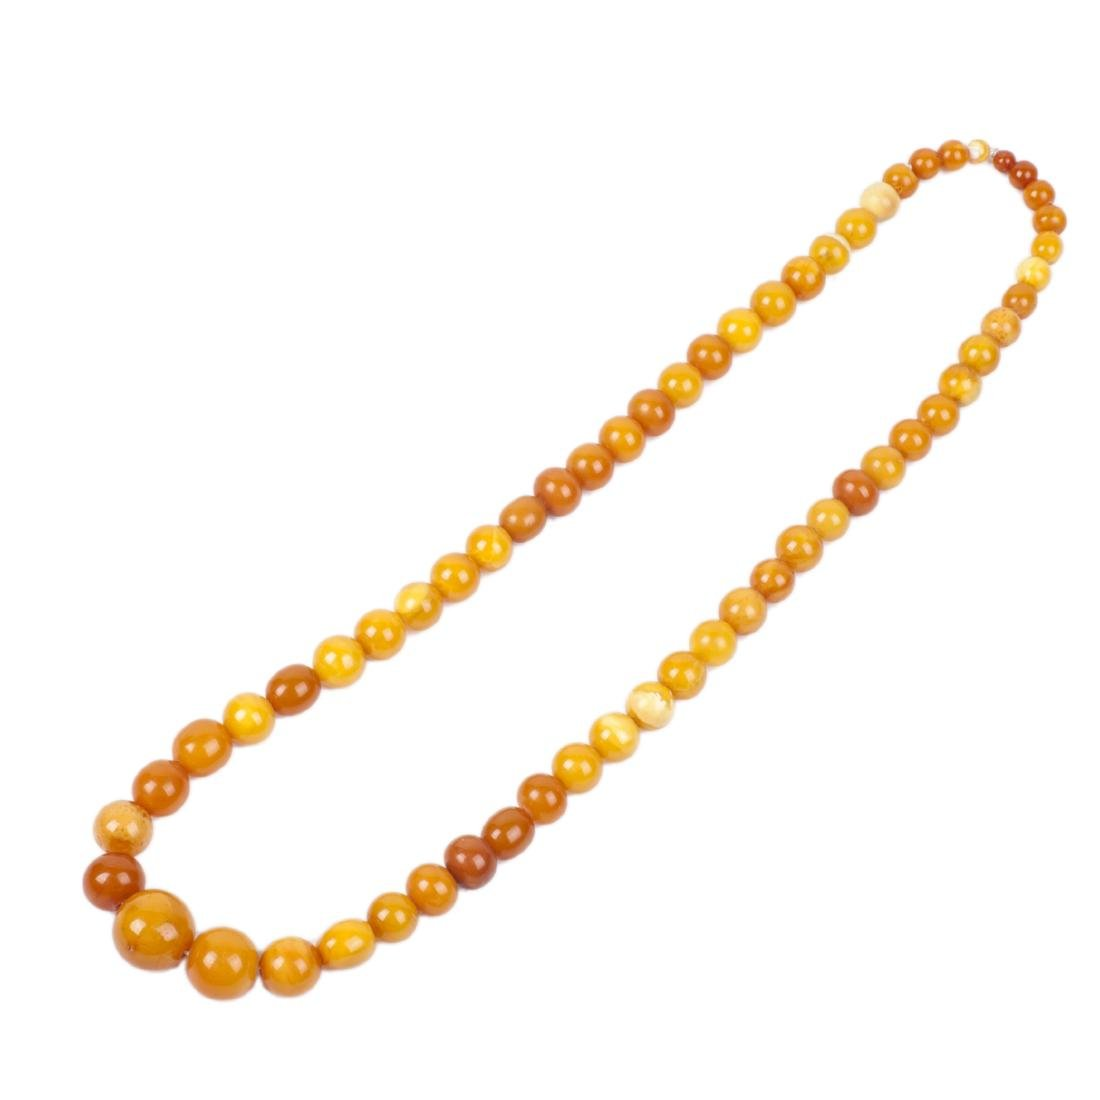 Antique Baltic amber necklace